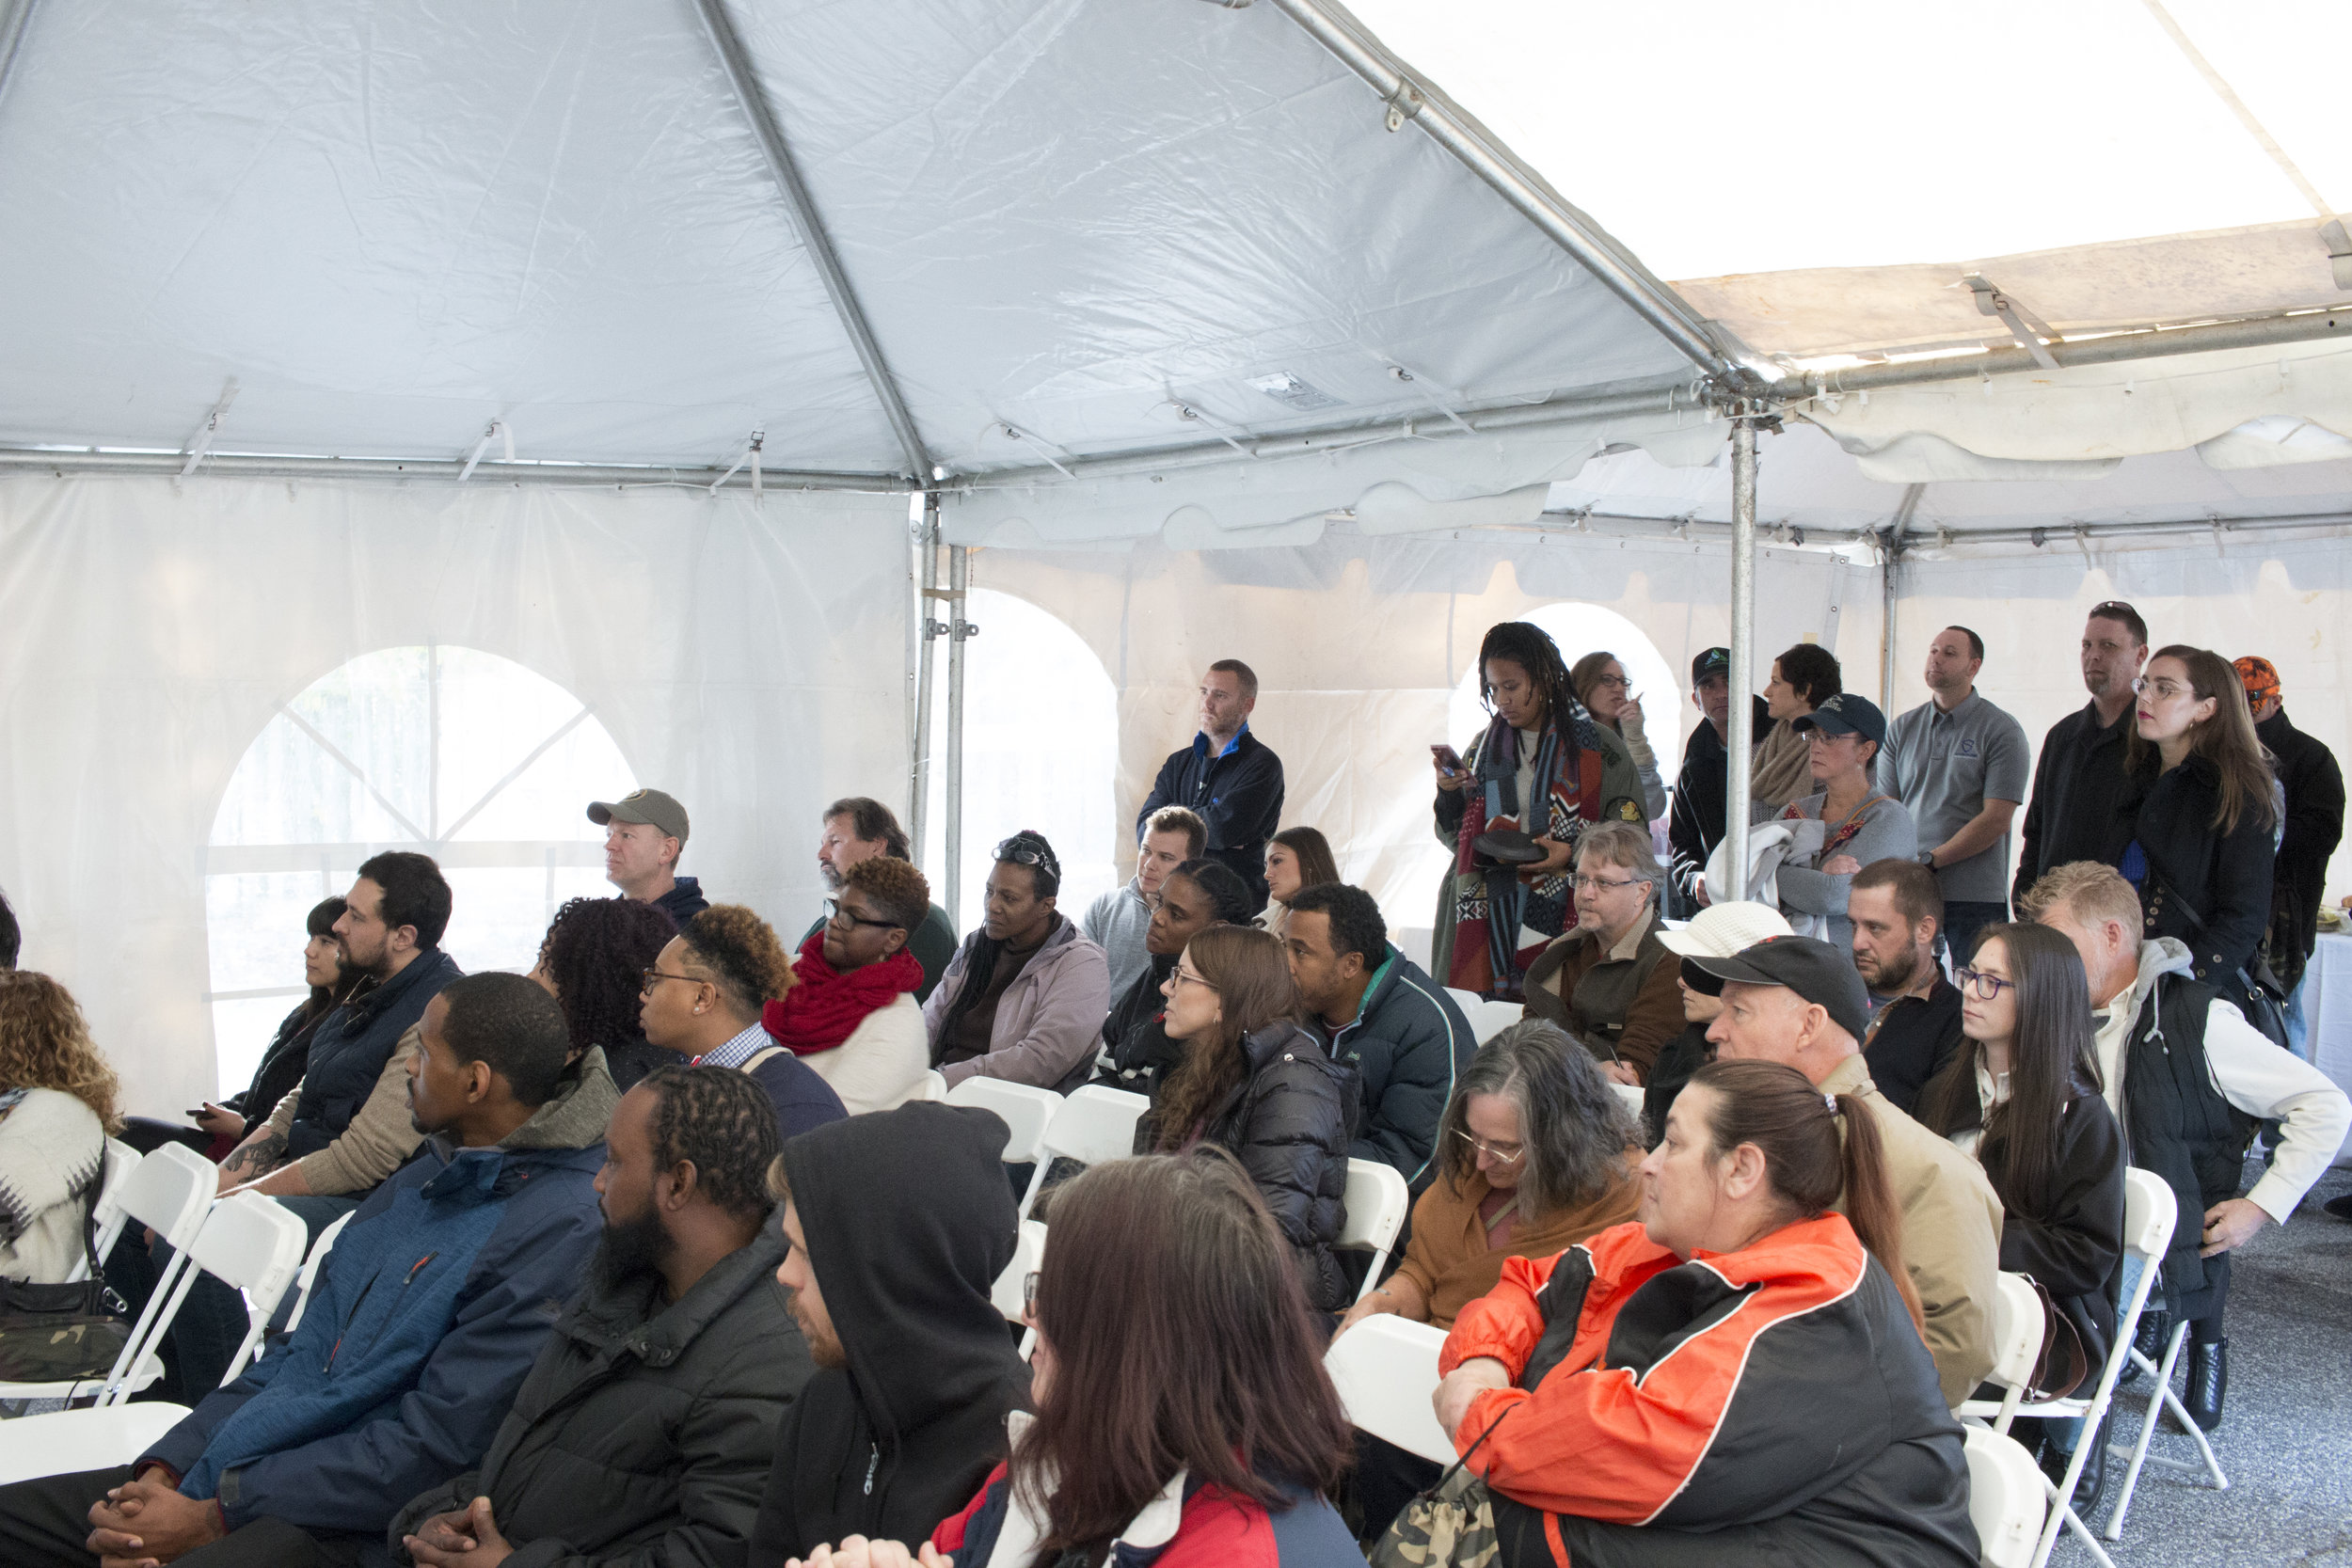 Attendees learn how medical cannabis is grown, processed, tested and dispensed.